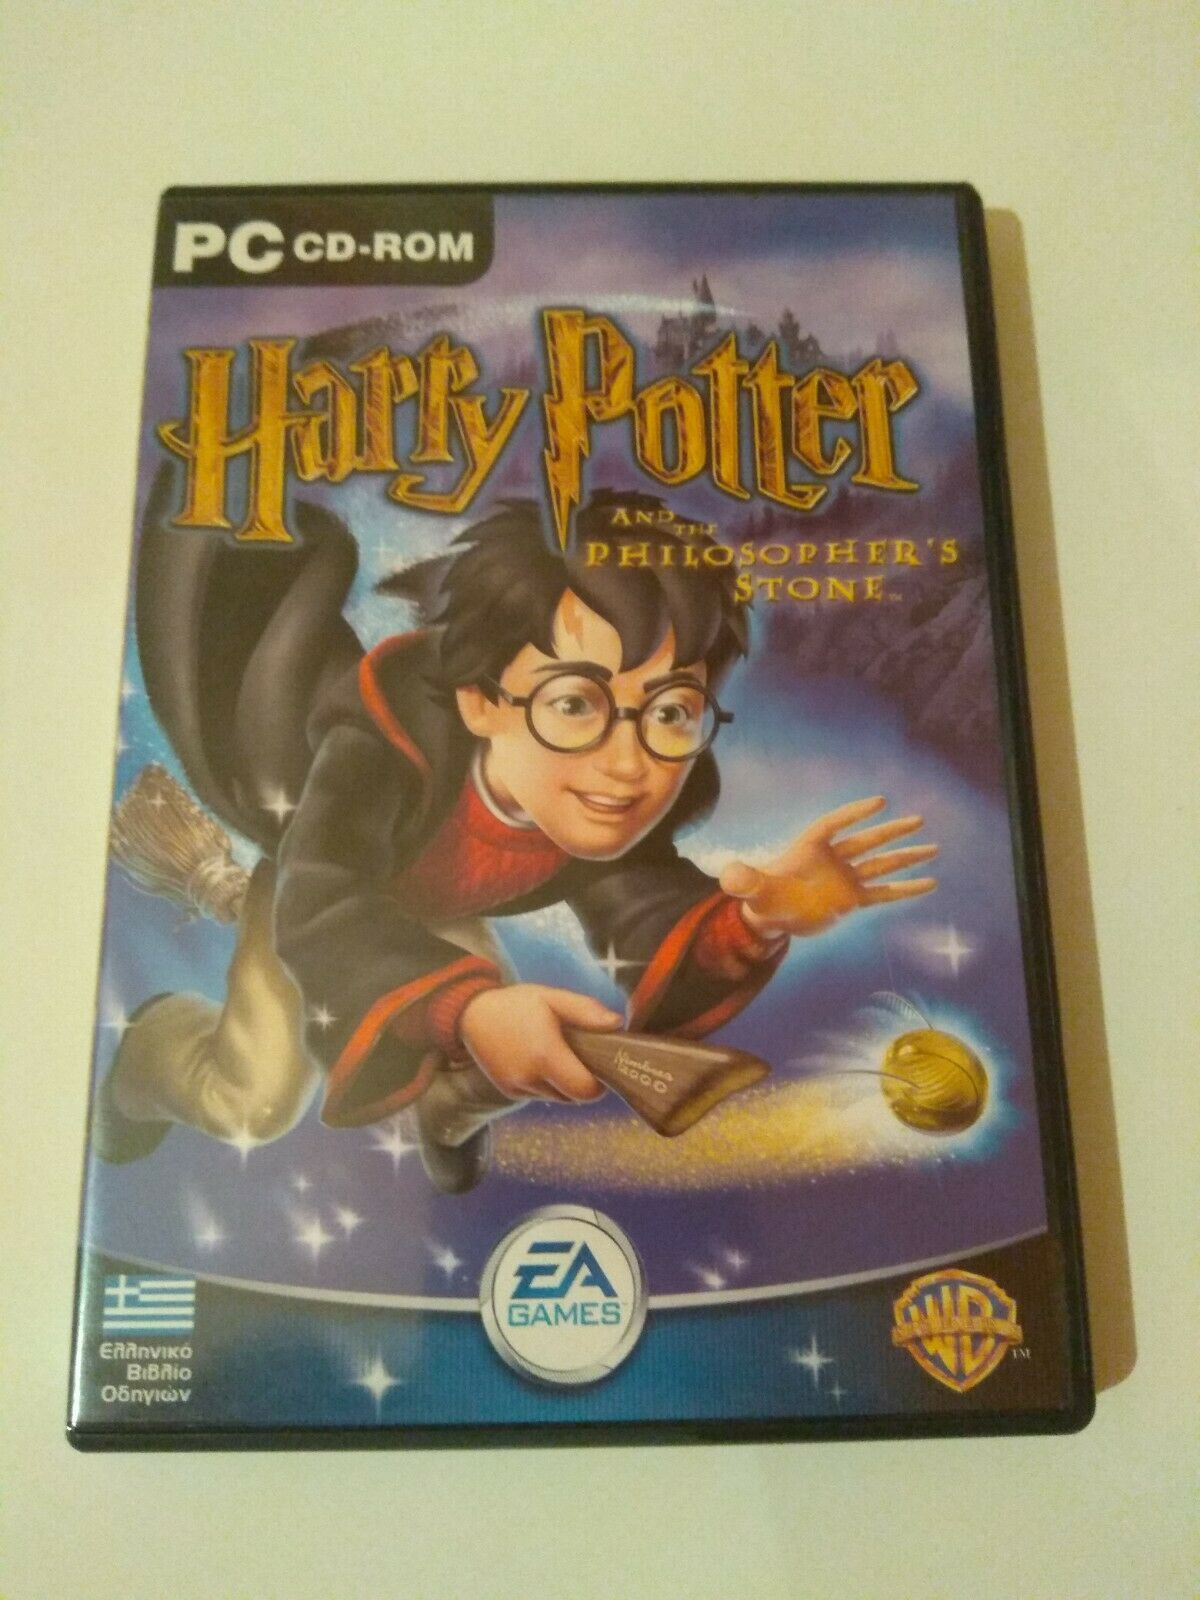 Harry Potter and the philosopher's stone PC game